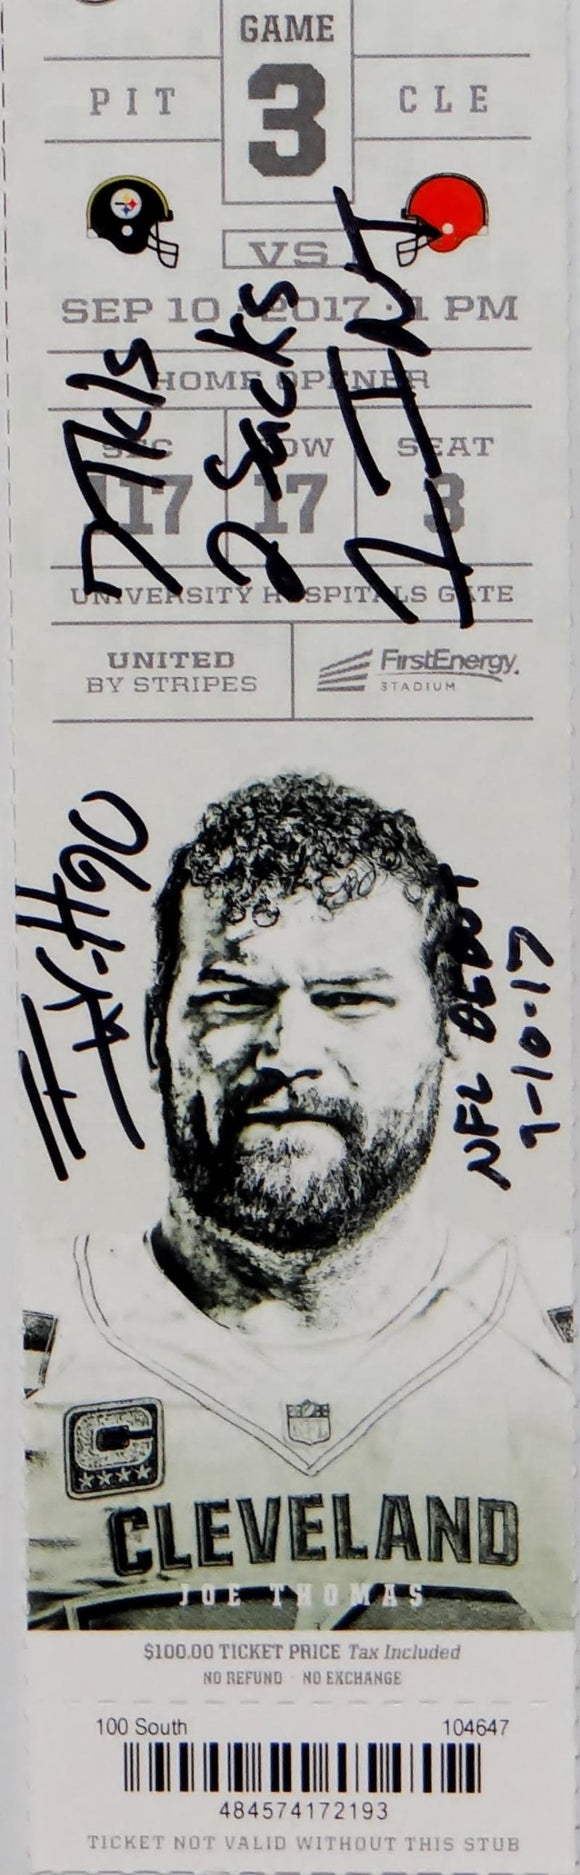 TJ Watt Autographed NFL Debut Game Ticket with 4 Inscriptions- JSA W Auth *Black